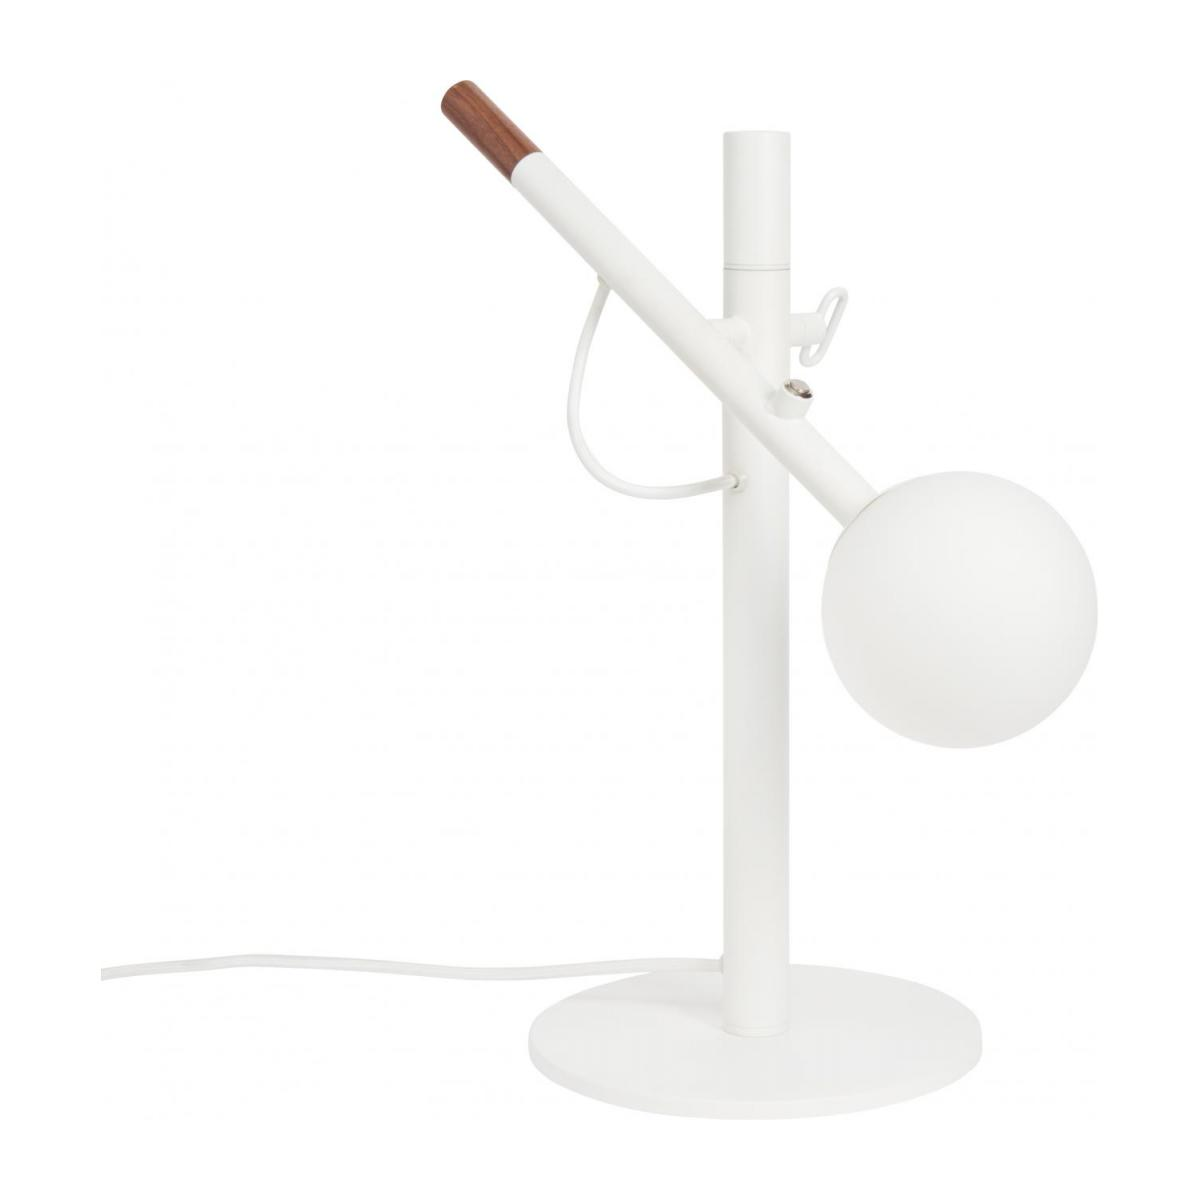 Metal and wood table lamp, white - Design by Gaston Lobet n°1